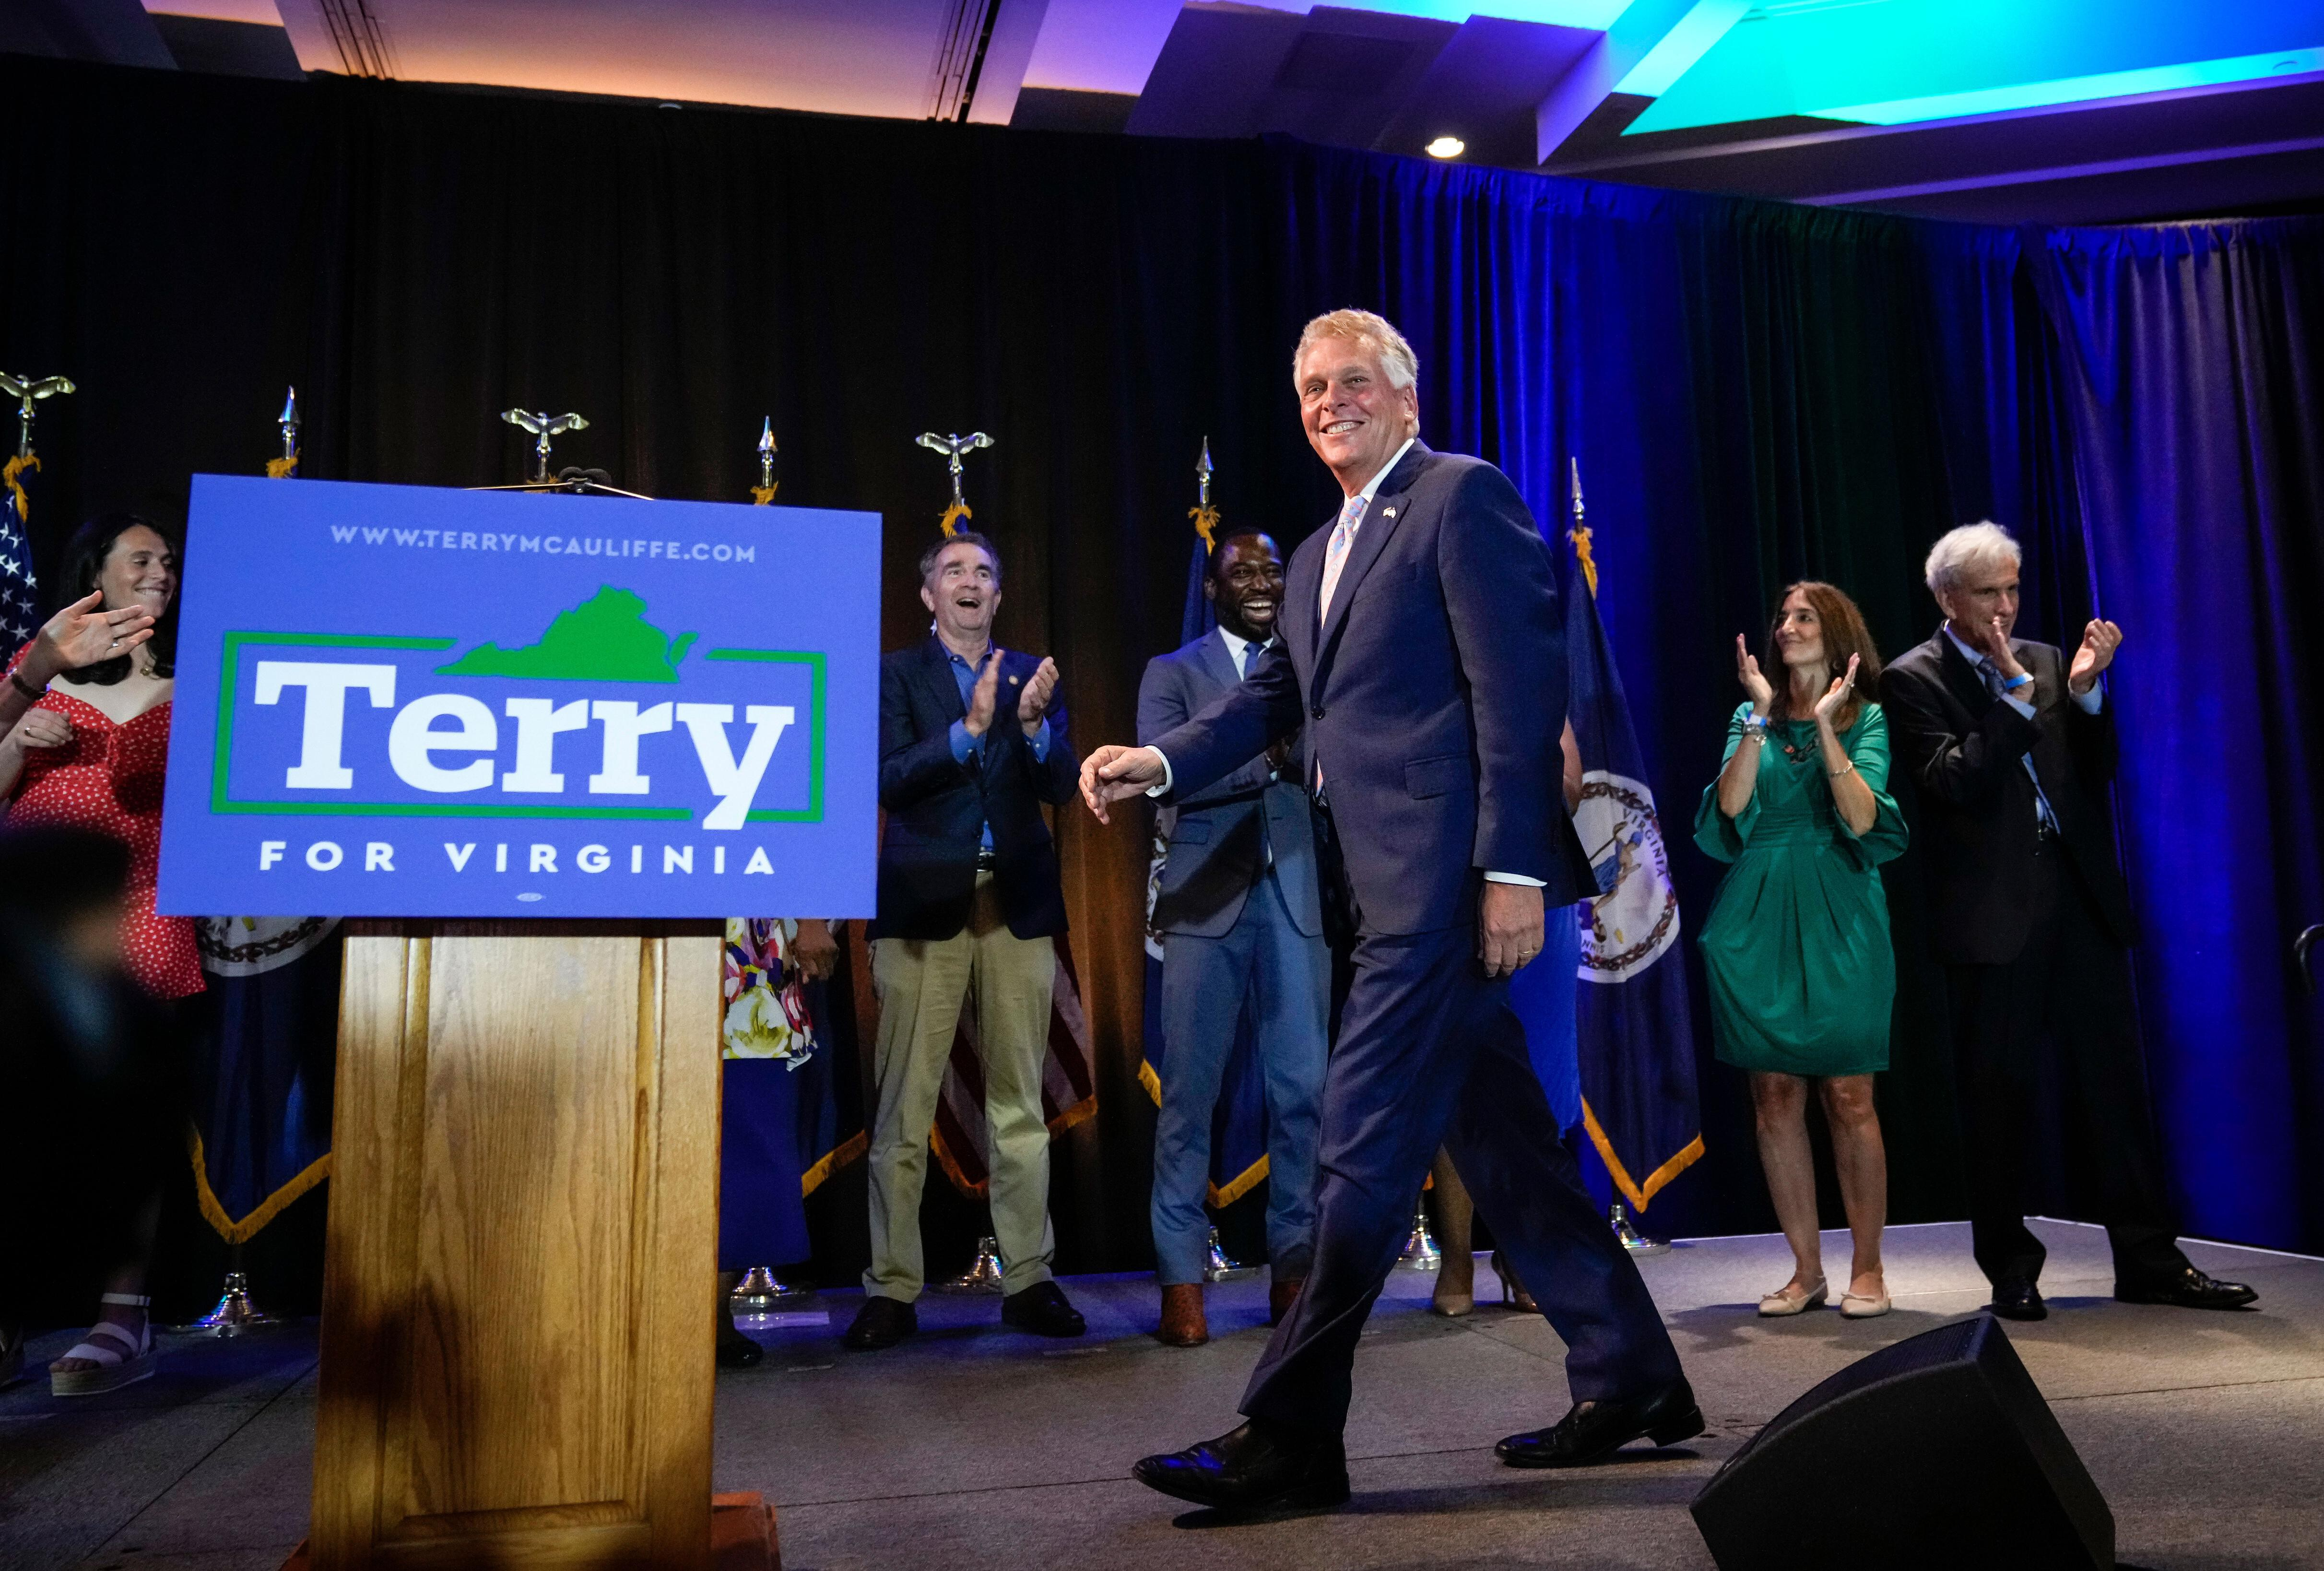 Bloomberg-linked gun-control group plans $1.8 million campaign to elect Terry McAuliffe and Democrats in Virginia